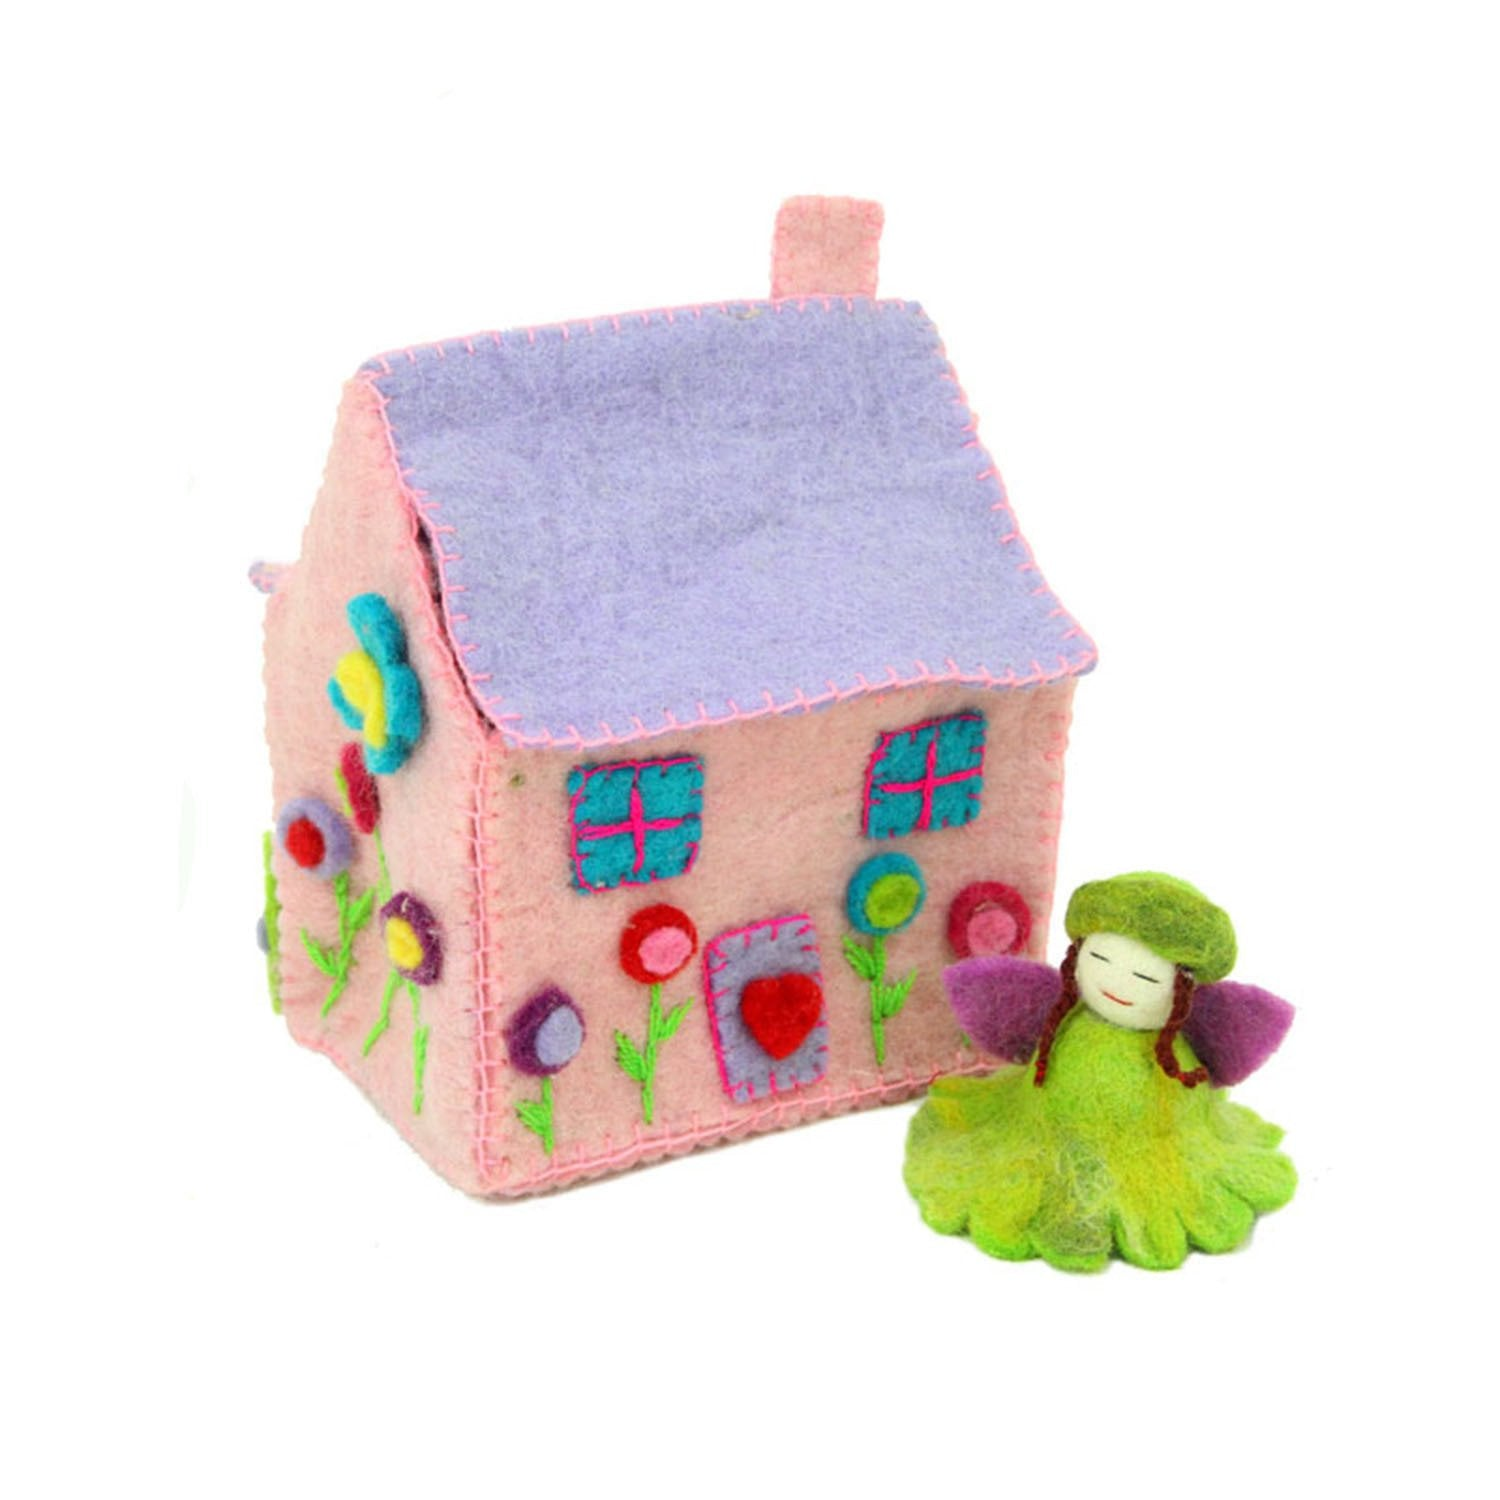 Handcrafted Pink Felt Fairy House